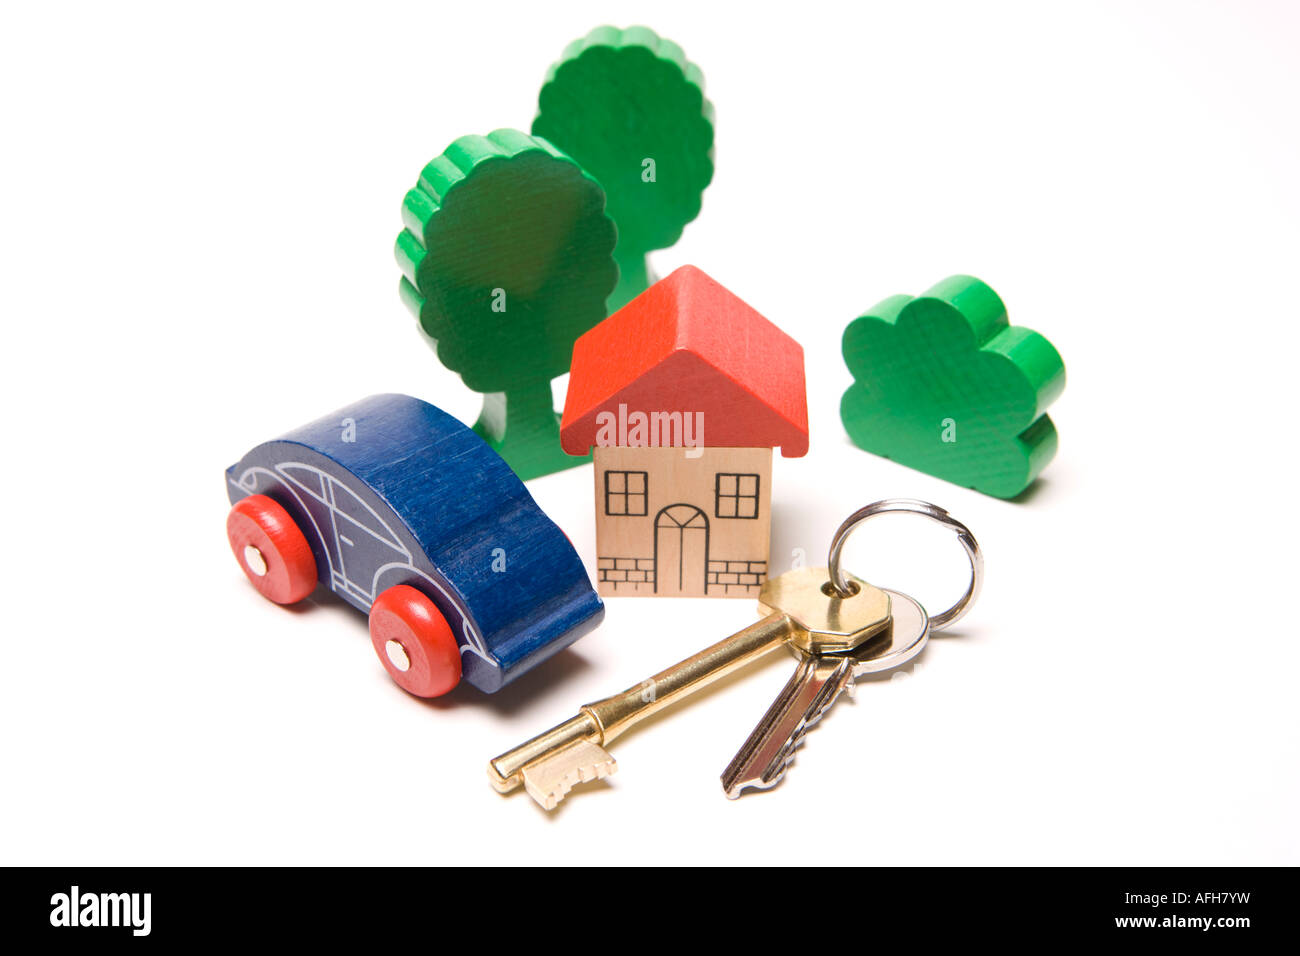 Housing key to house or property in the suburbs or the country with car outside - Stock Image